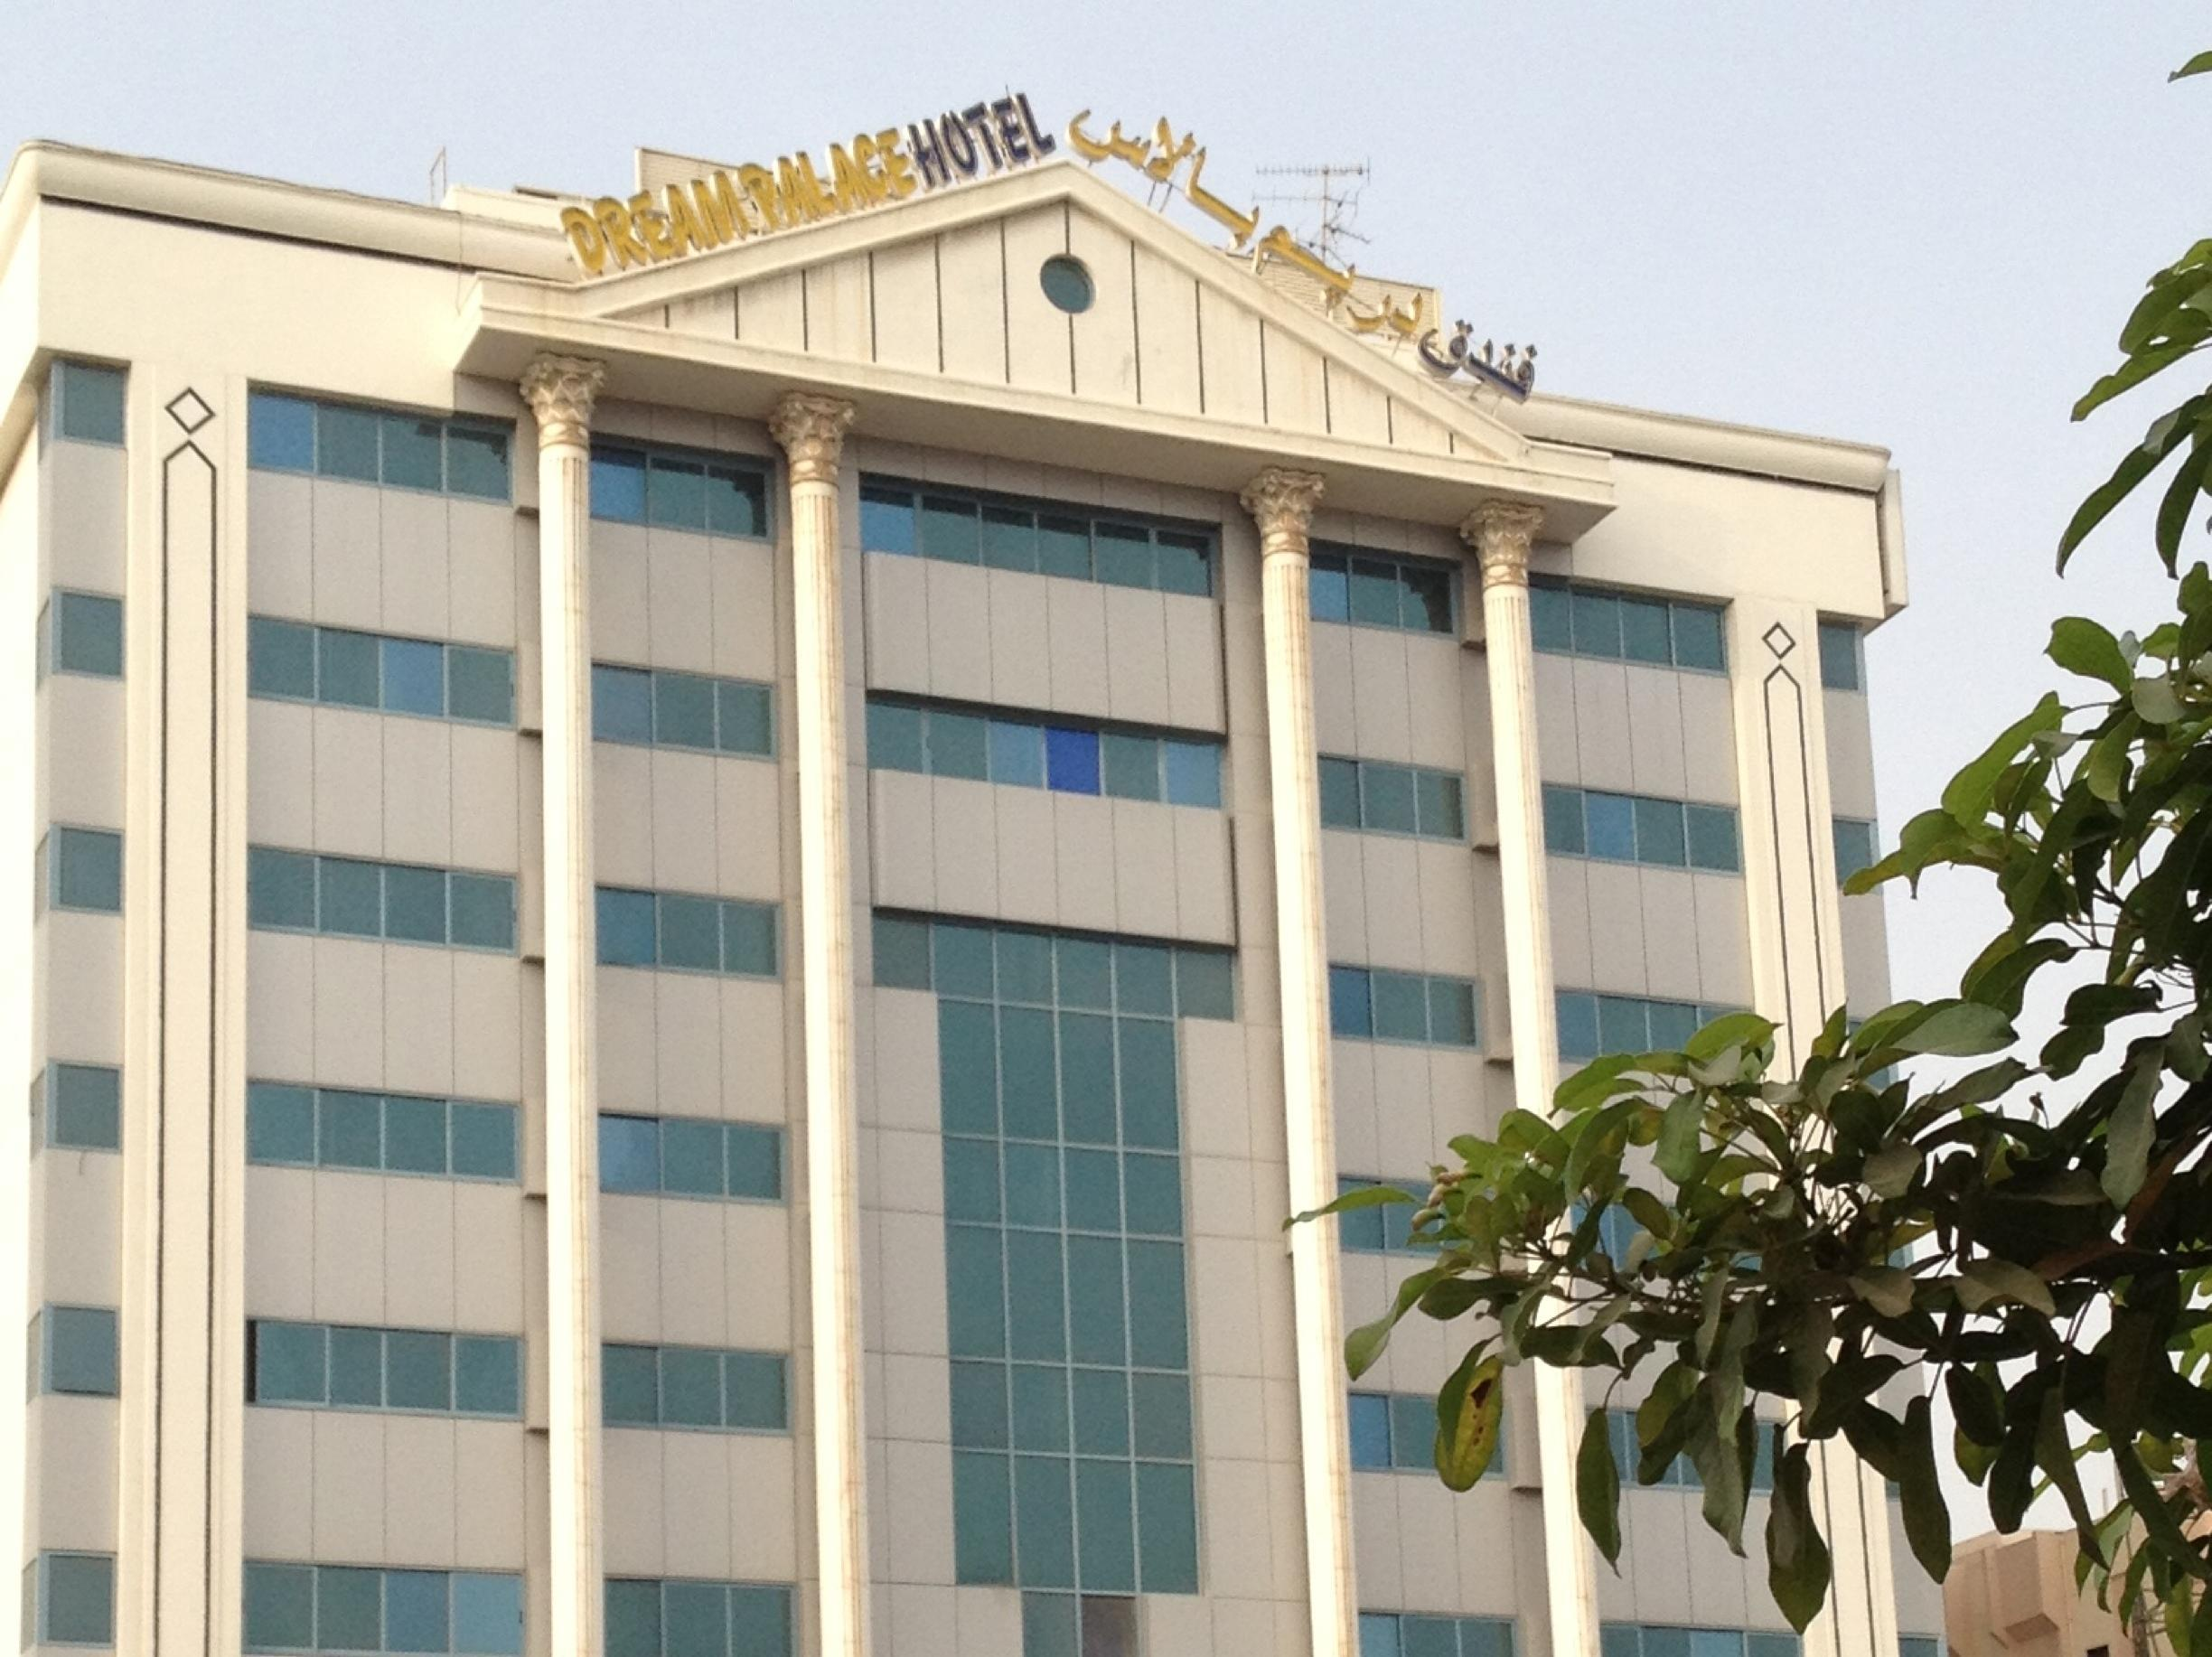 Policies of Dream Palace Hotel